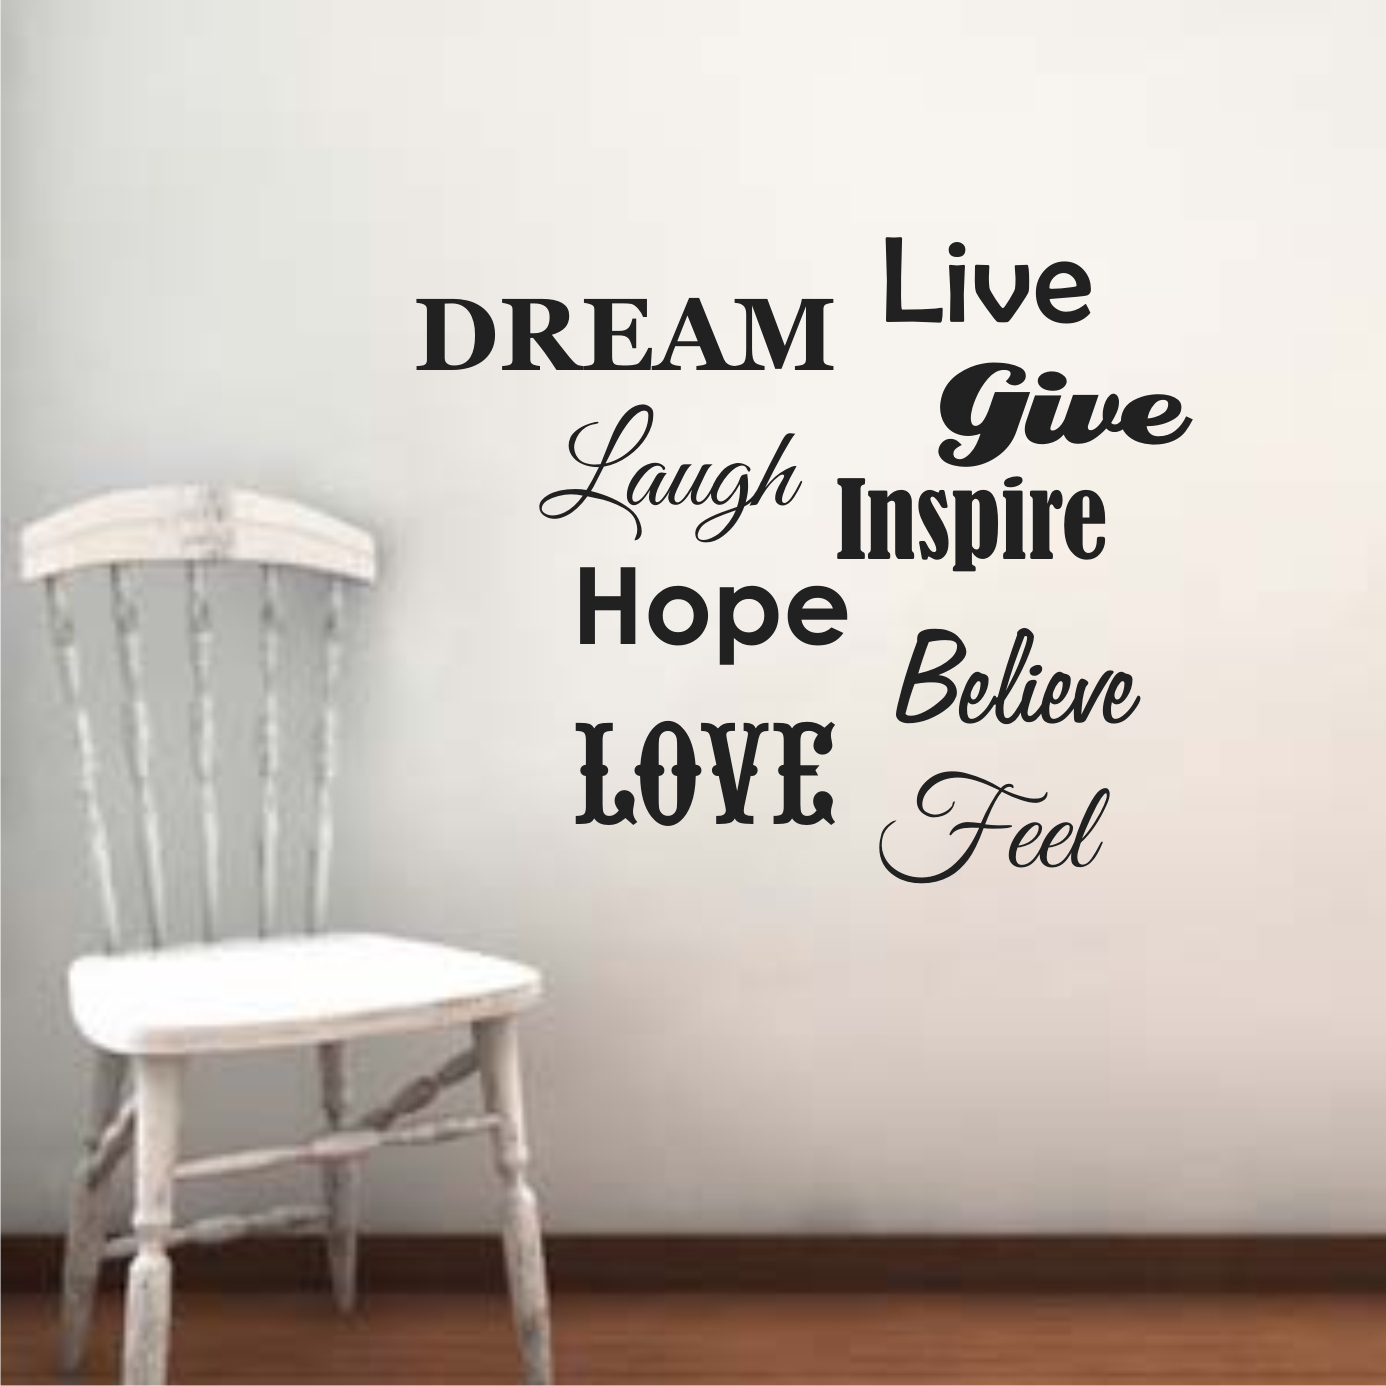 Words Of Inspiration Quotes Words For Inspiration Inspirational Words  R19500  The